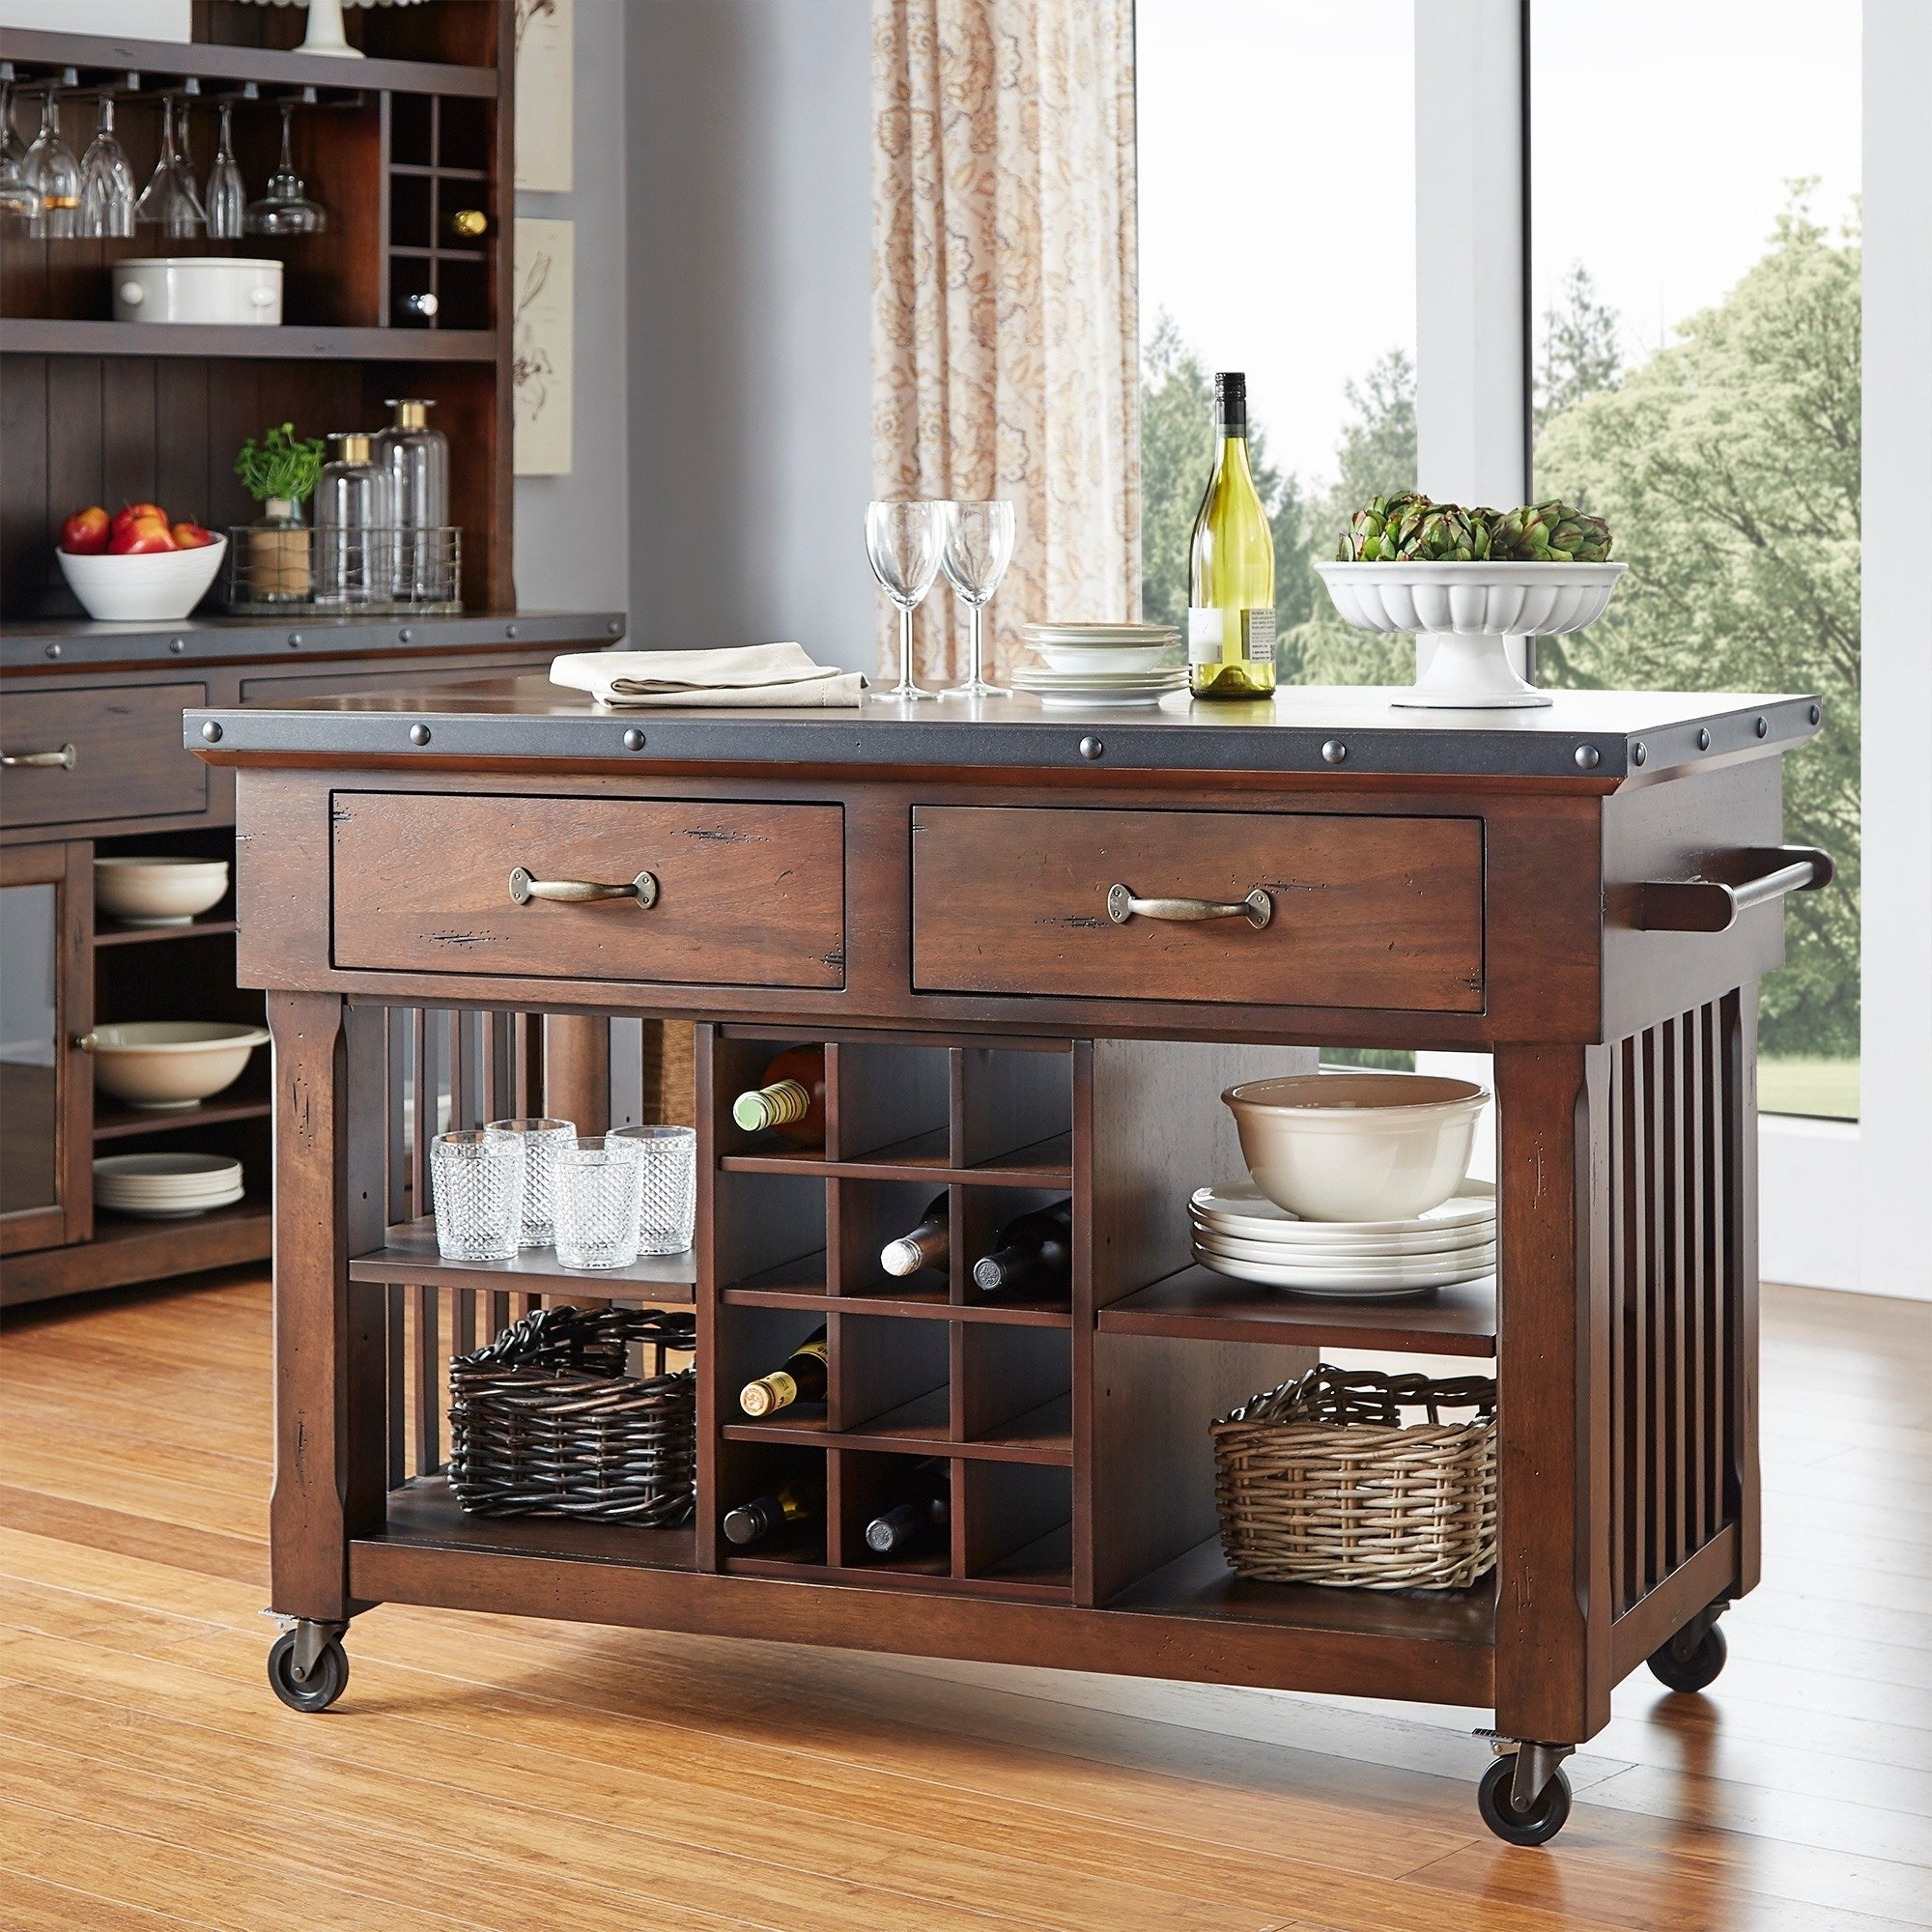 Shop Norwood 2 Drawer Rolling Kitchen Island With Wine Rack – Free For Preferred Norwood Upholstered Hostess Chairs (View 17 of 20)